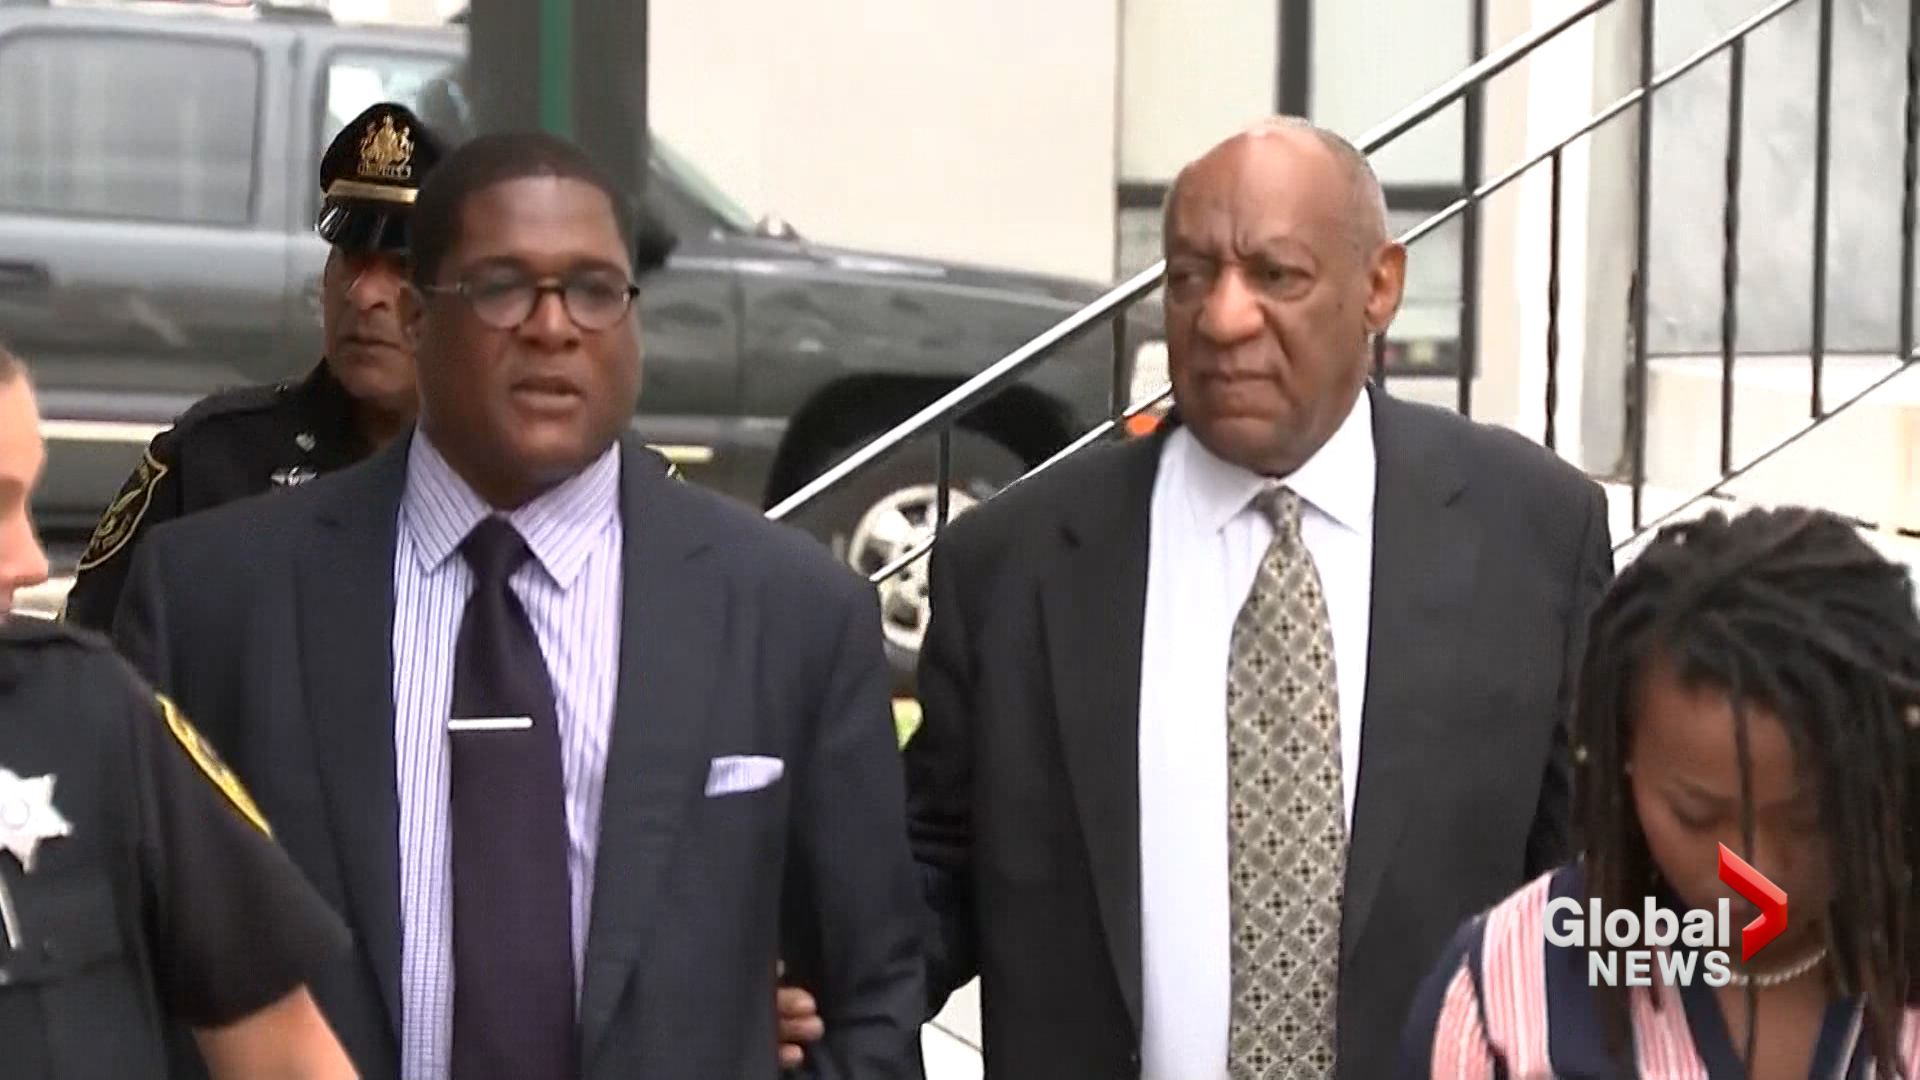 Deadlock in Cosby trial, jury told to keep deliberating